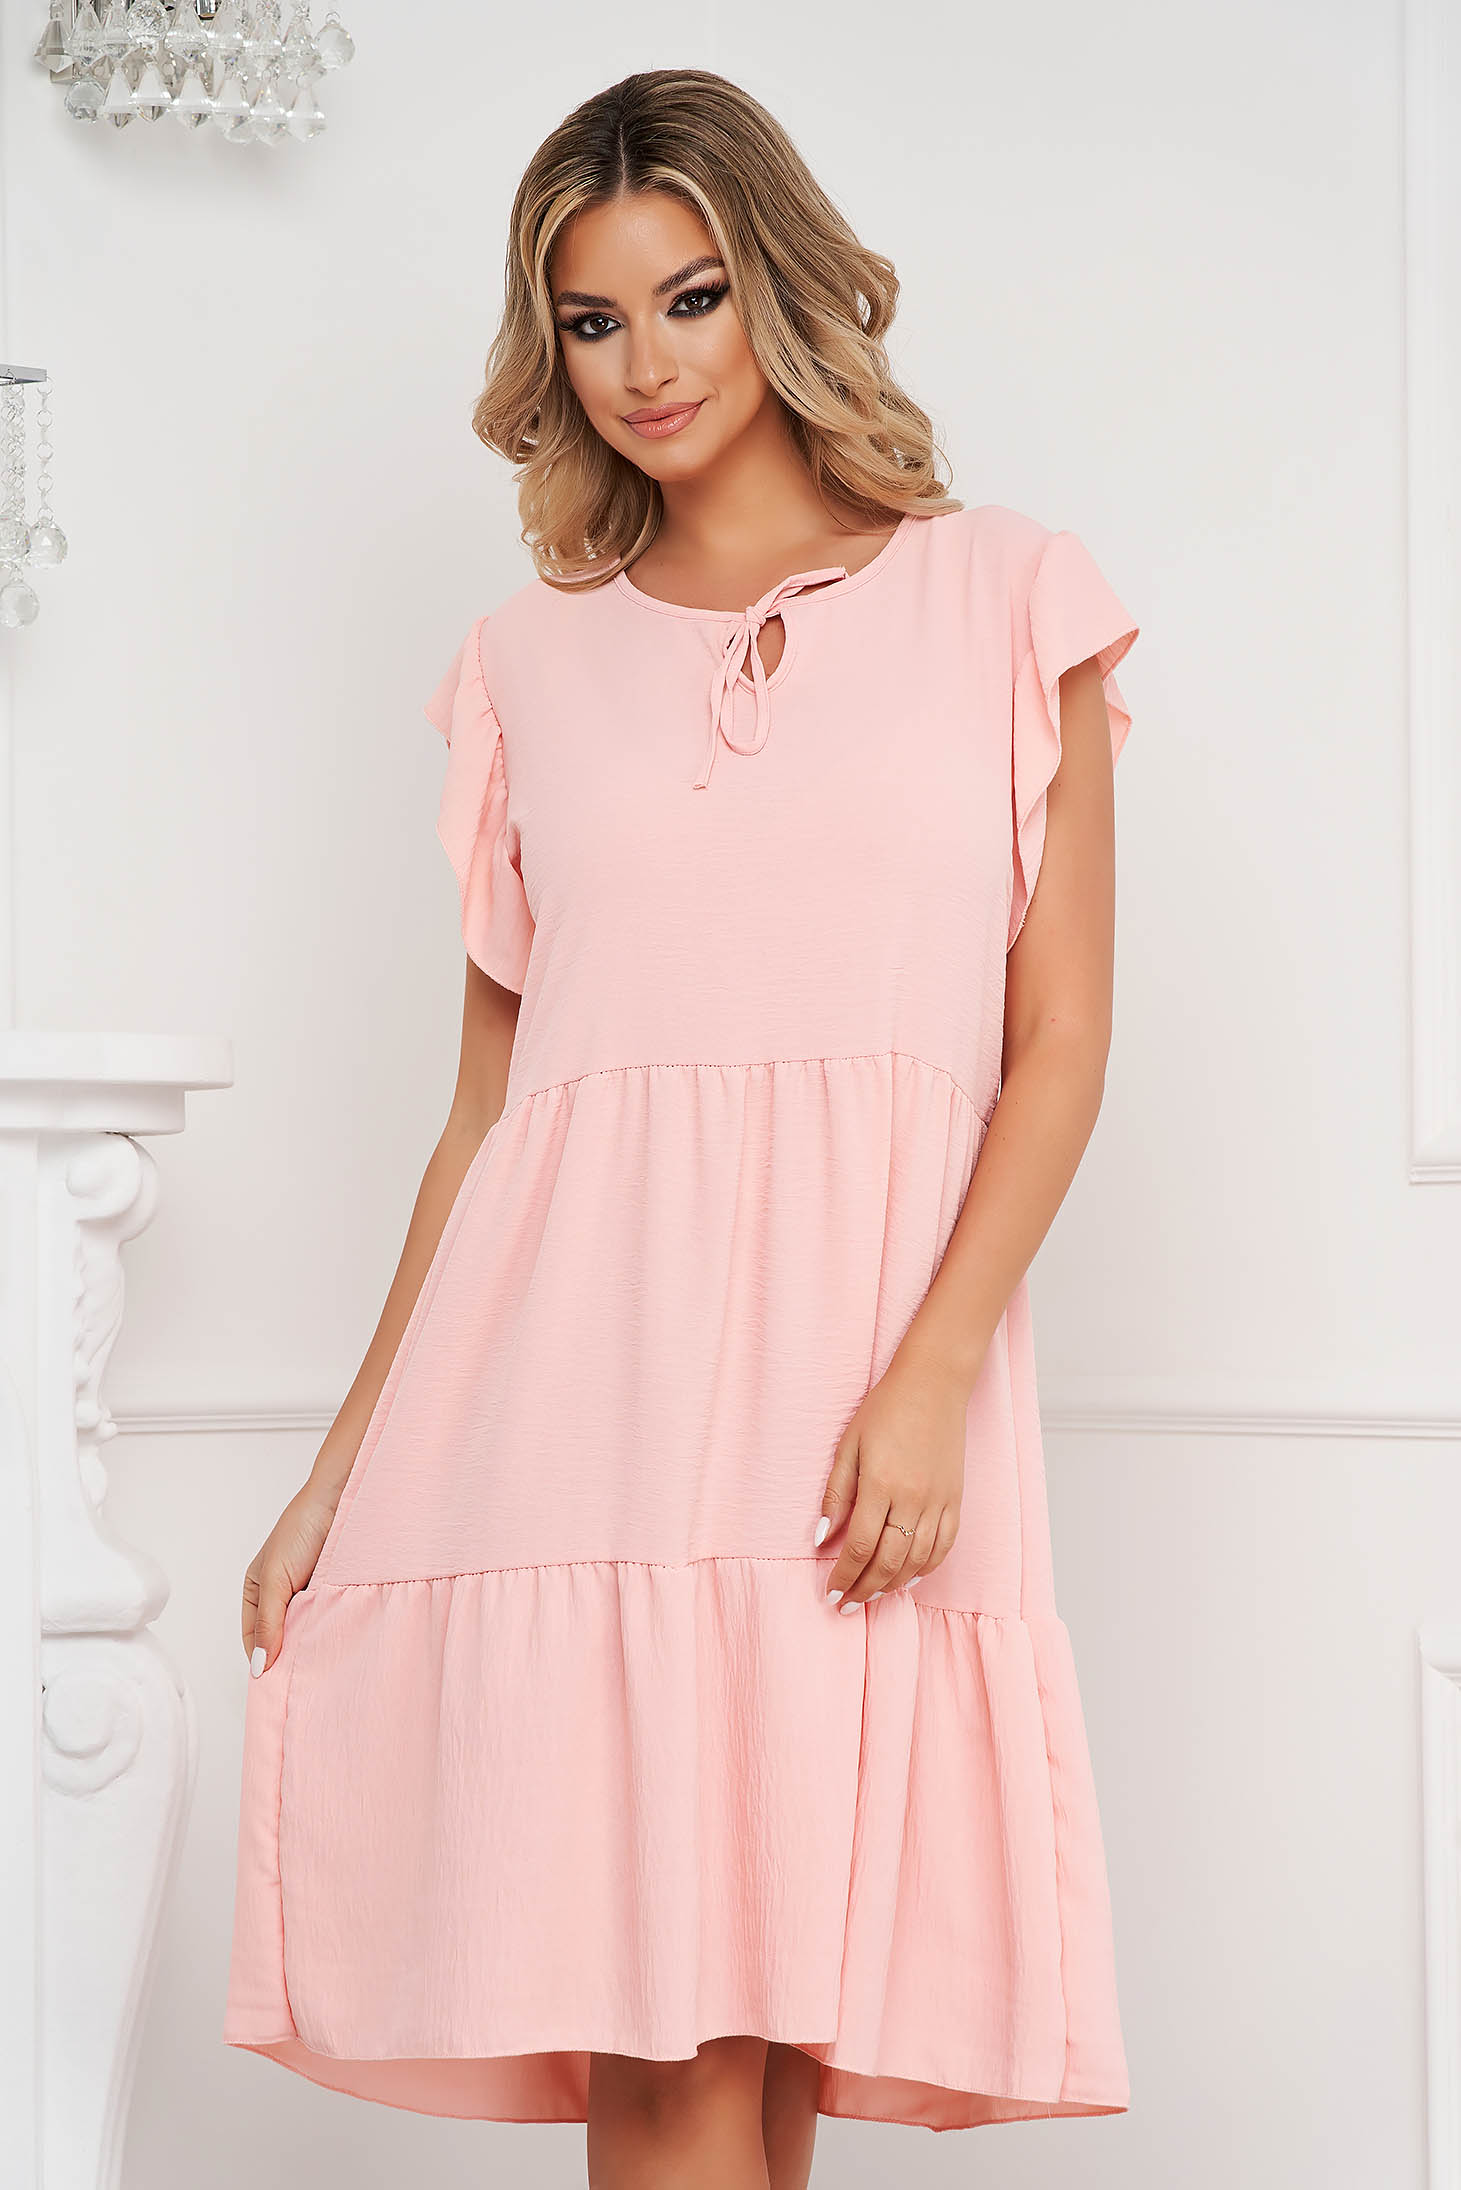 Peach dress midi loose fit airy fabric with ruffle details